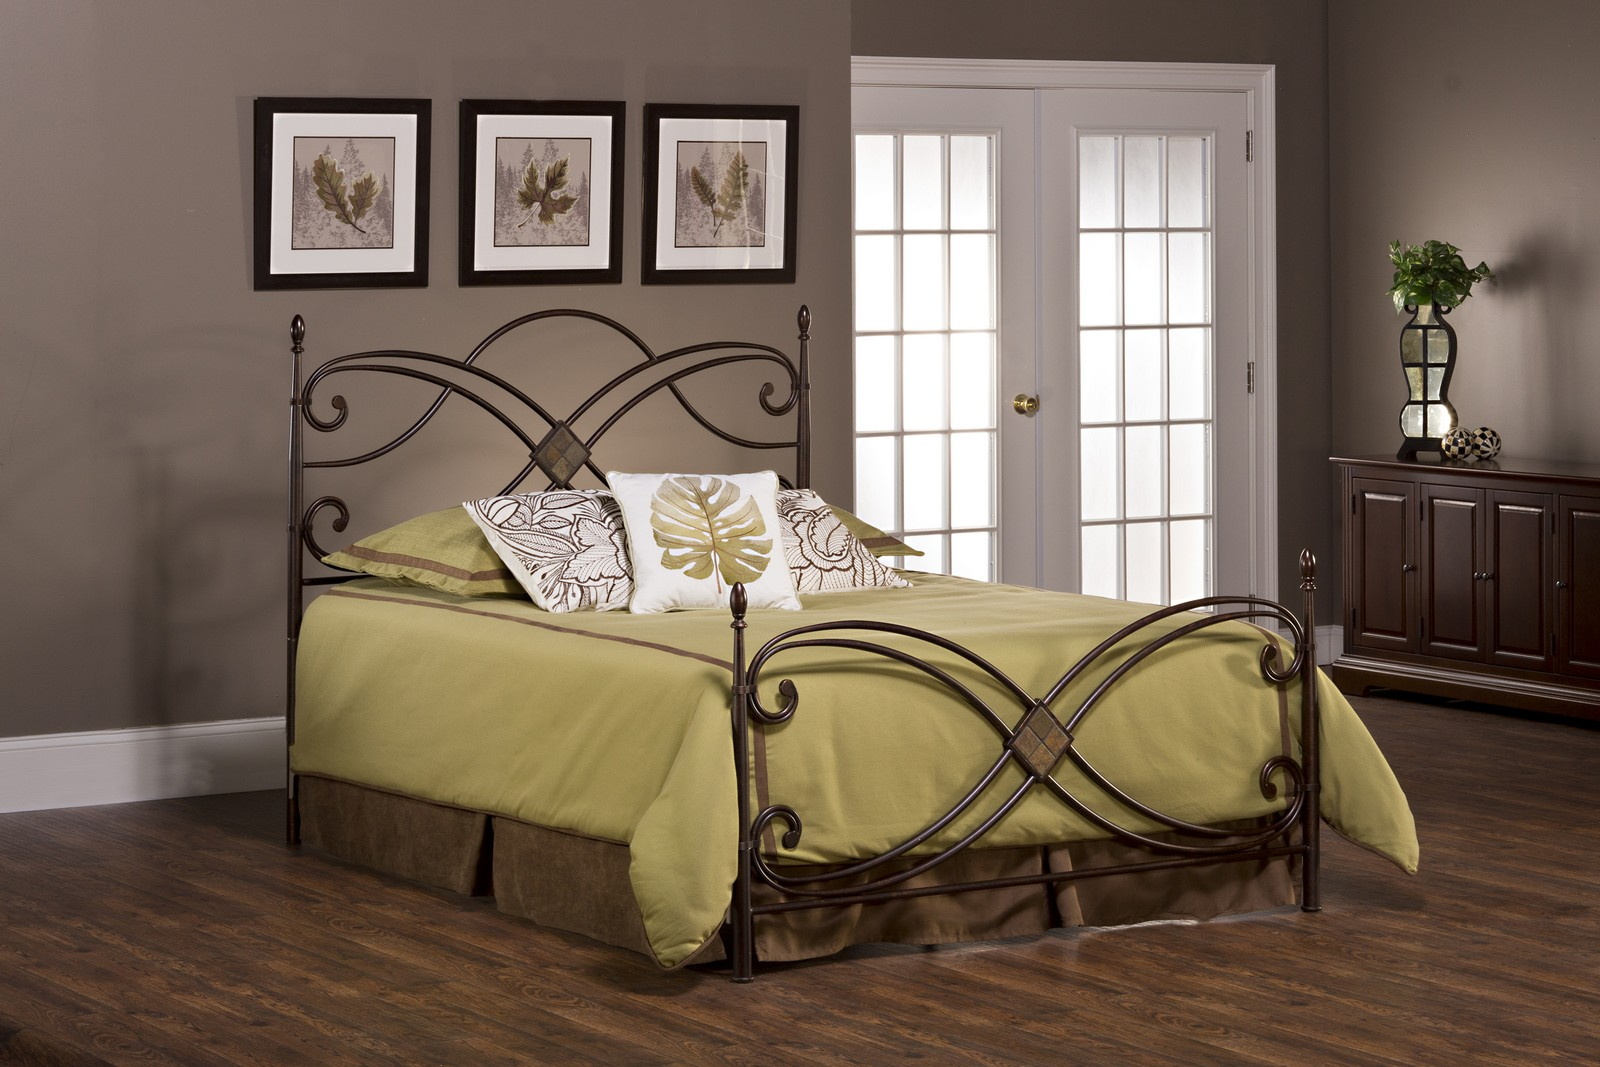 Hillsdale Barcelona Bed - Antique Copper